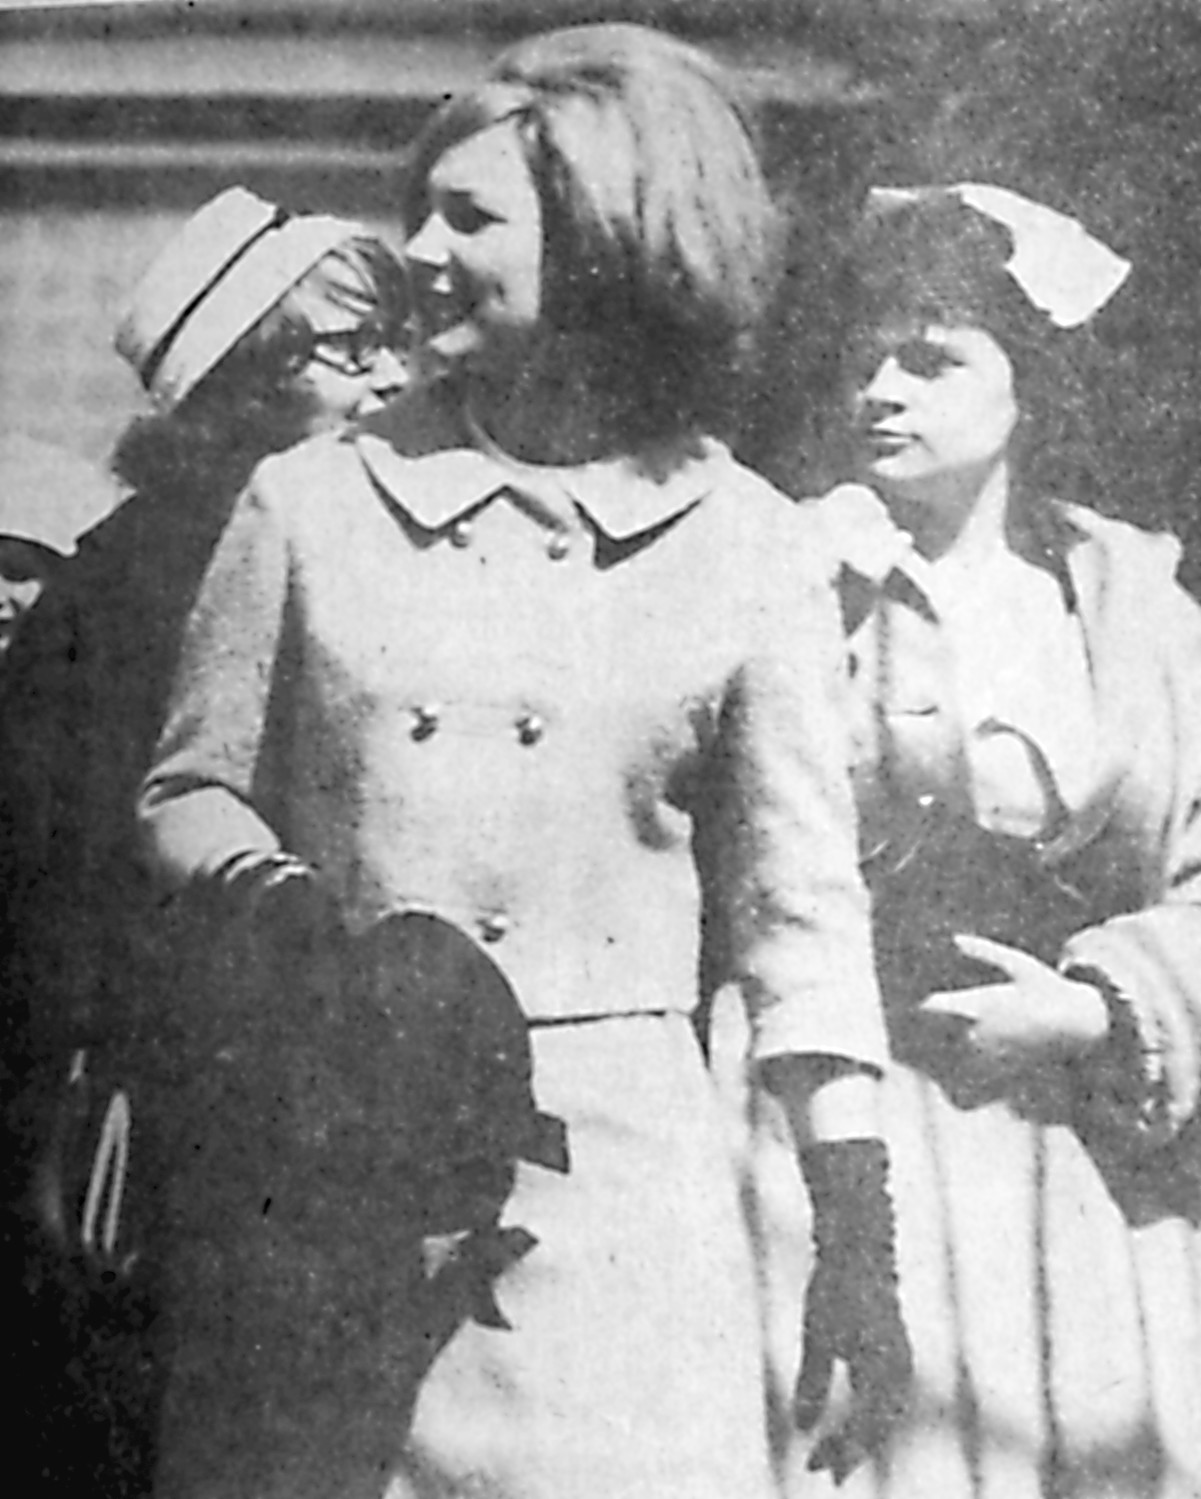 The Easter parade began just after church Sunday. It was windy and chilly but a sunny day. The young lady, Miss Sandra Gofhus, looks chic in her new suit and carries the new bonnet in hand.